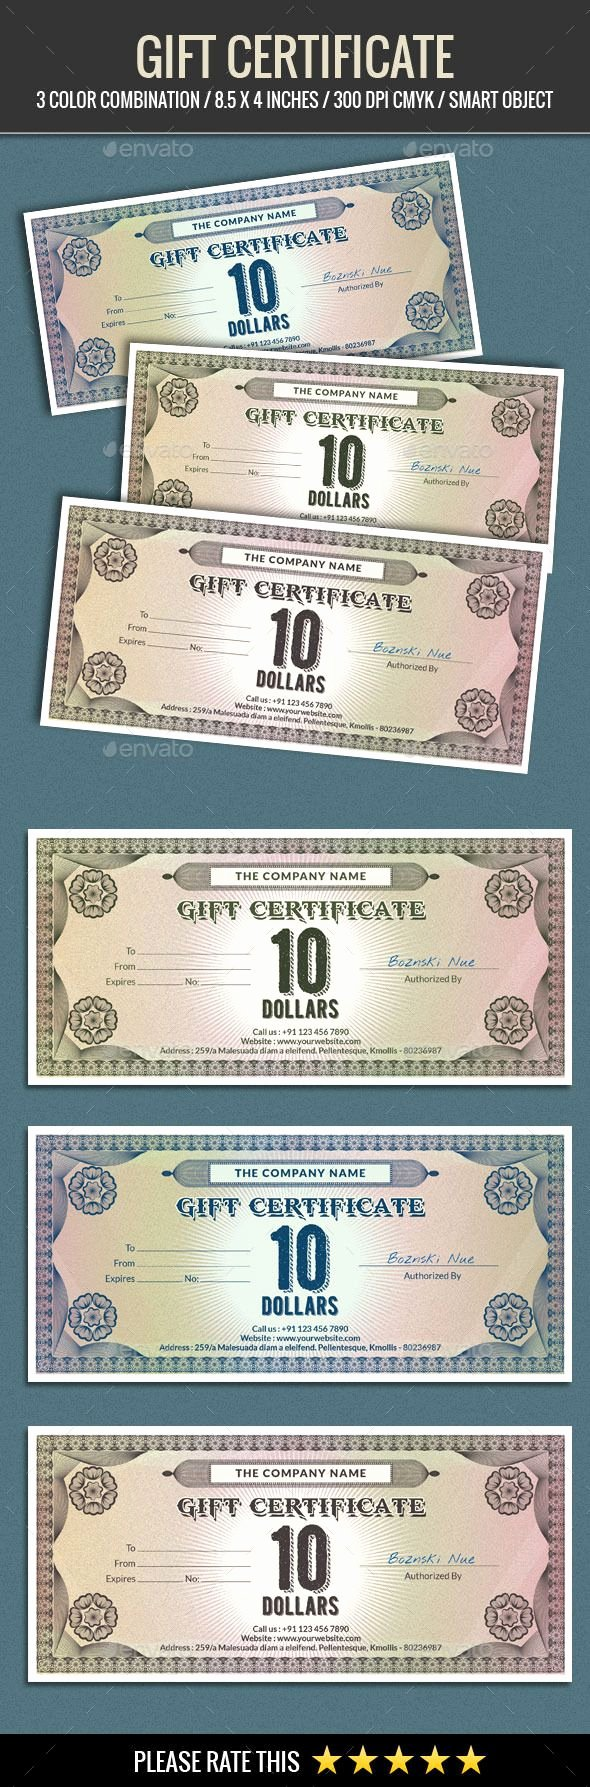 Silent Auction Certificate Template Awesome Best 25 Gift Certificates Ideas On Pinterest